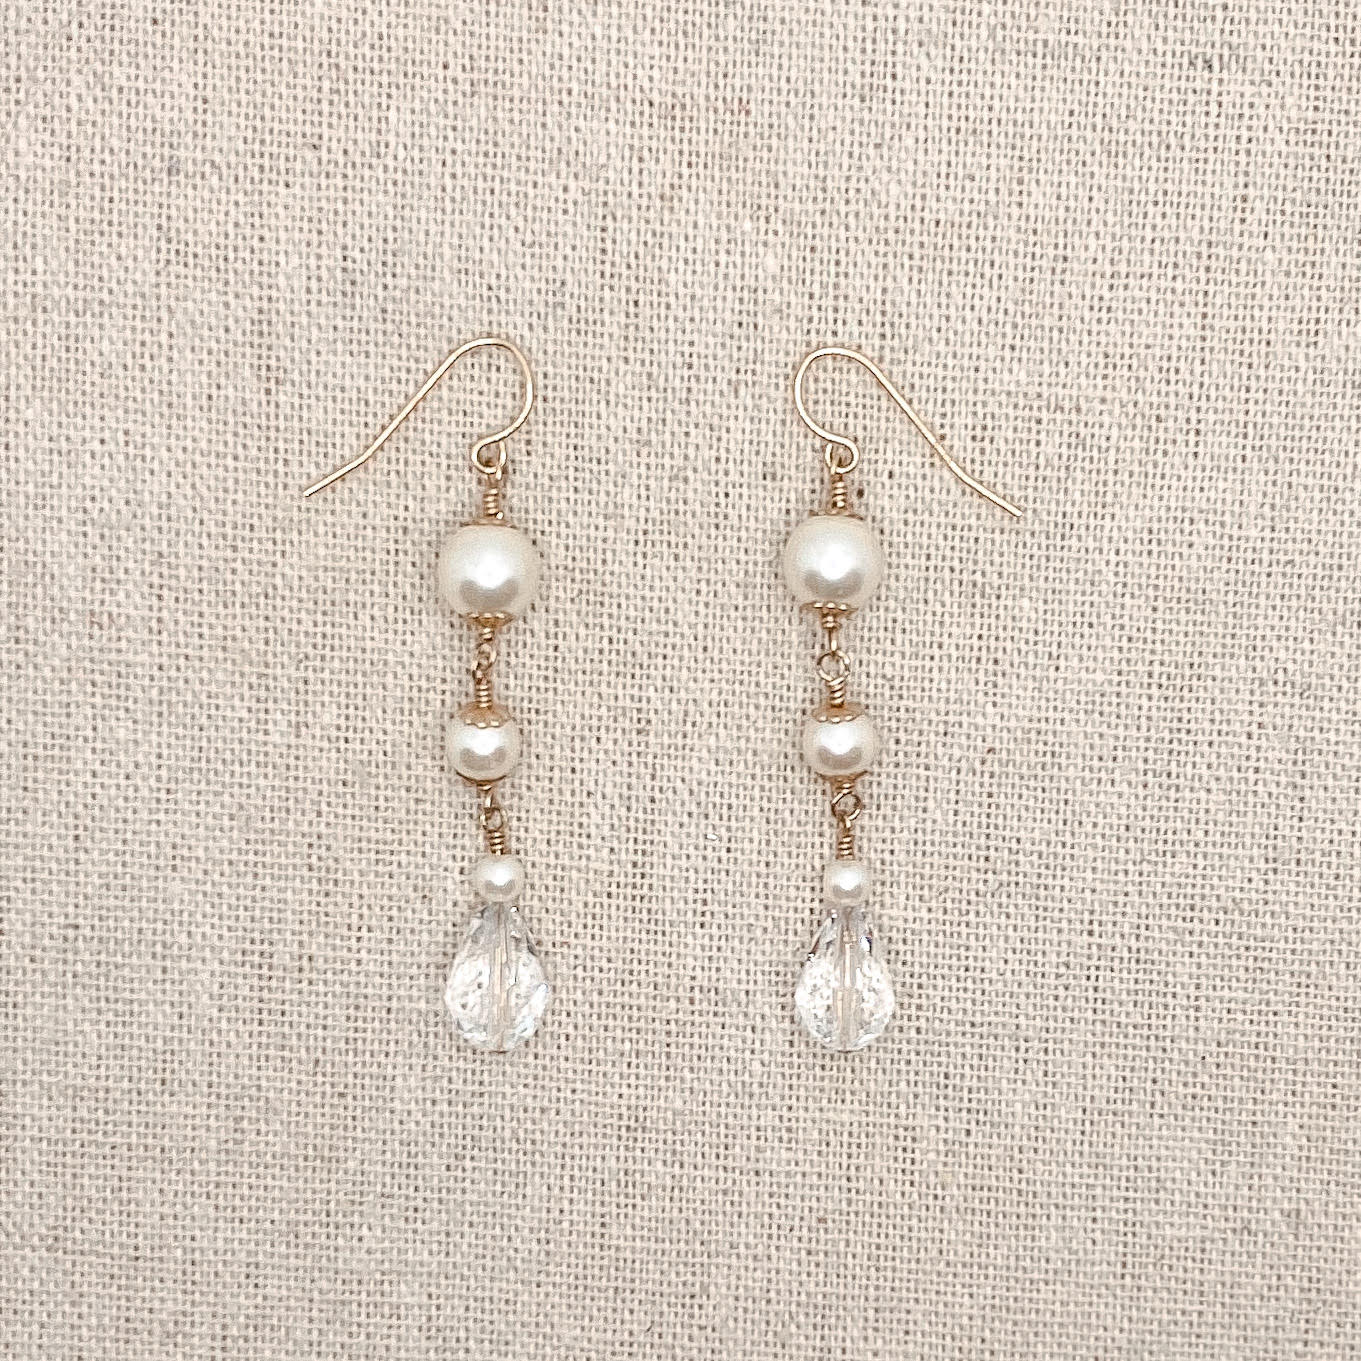 Sarah Walsh CE02 Gold Pearl with Crystal Earrings